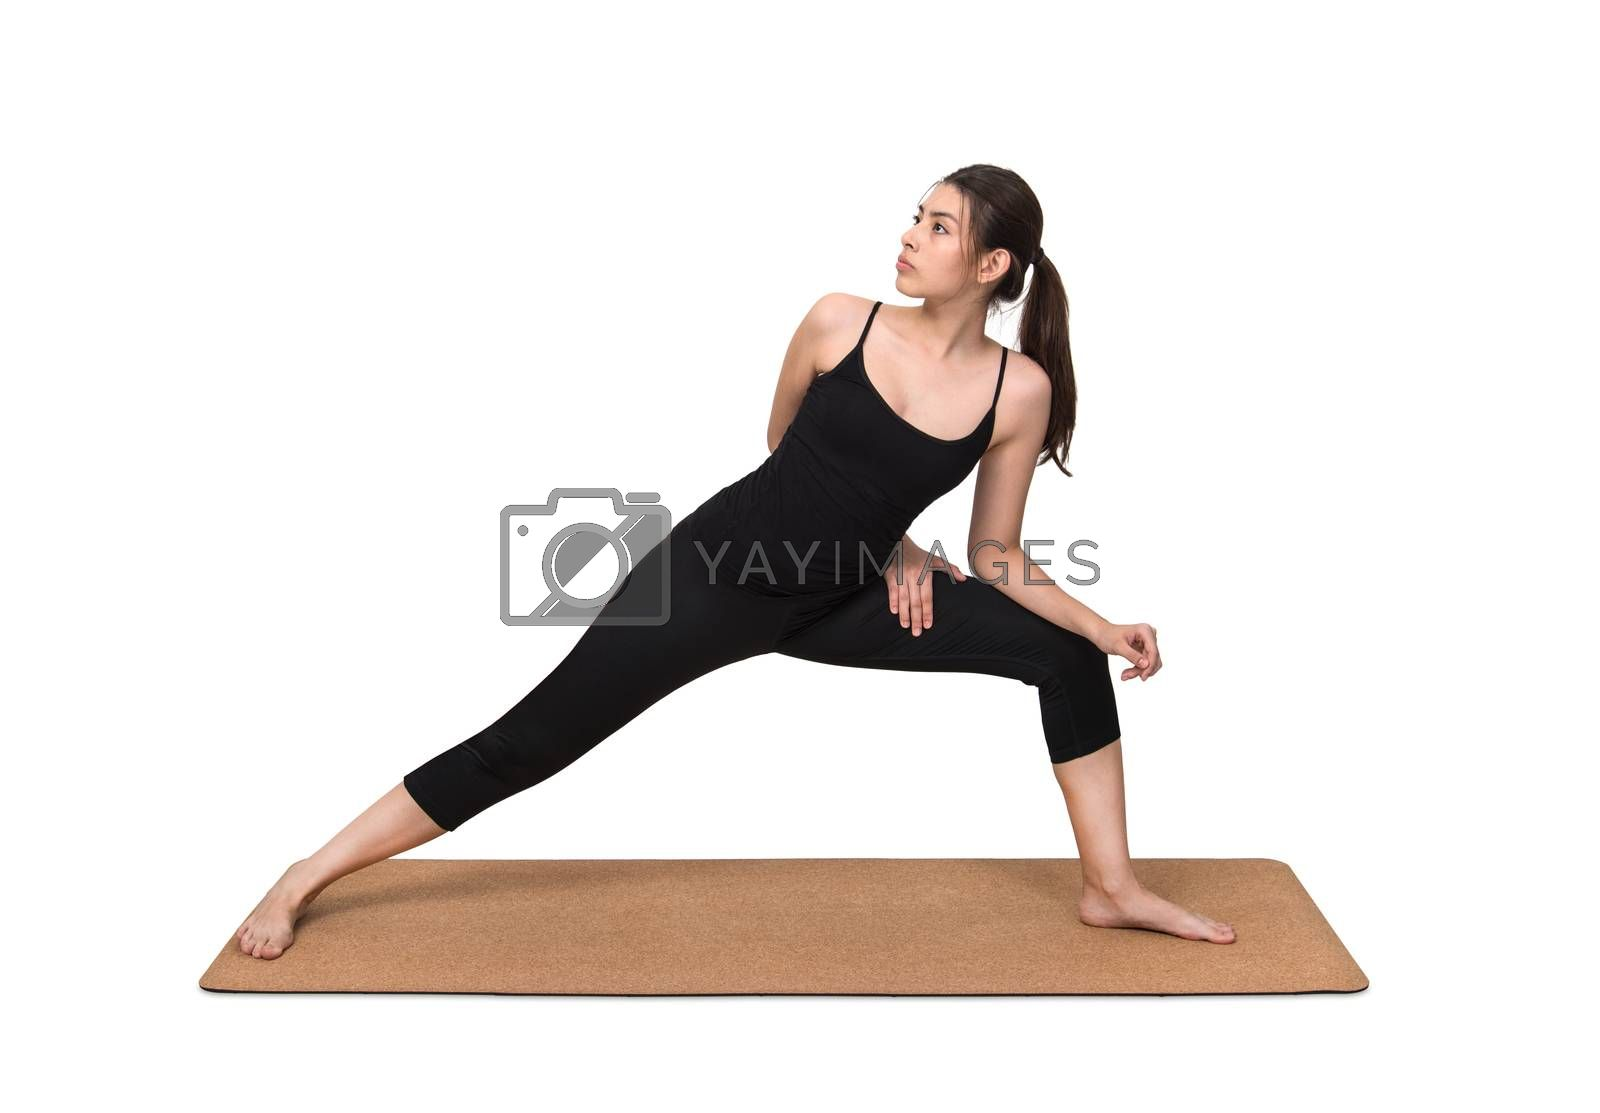 Young woman exercise yoga pose on cork yoga mat on white background